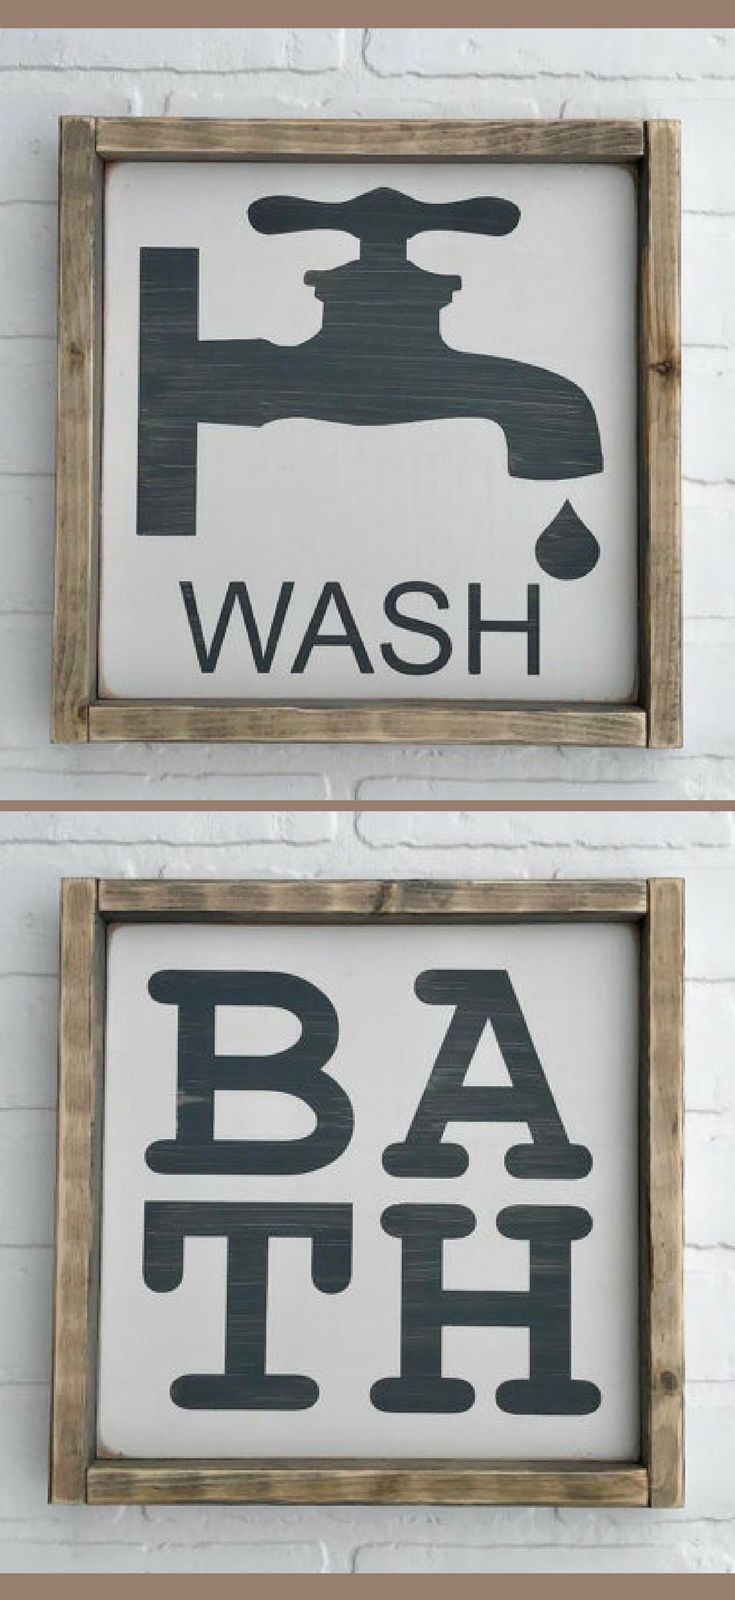 Wash Faucet And Bath Sign 12 Quot X 12 Quot Framed Wood Sign